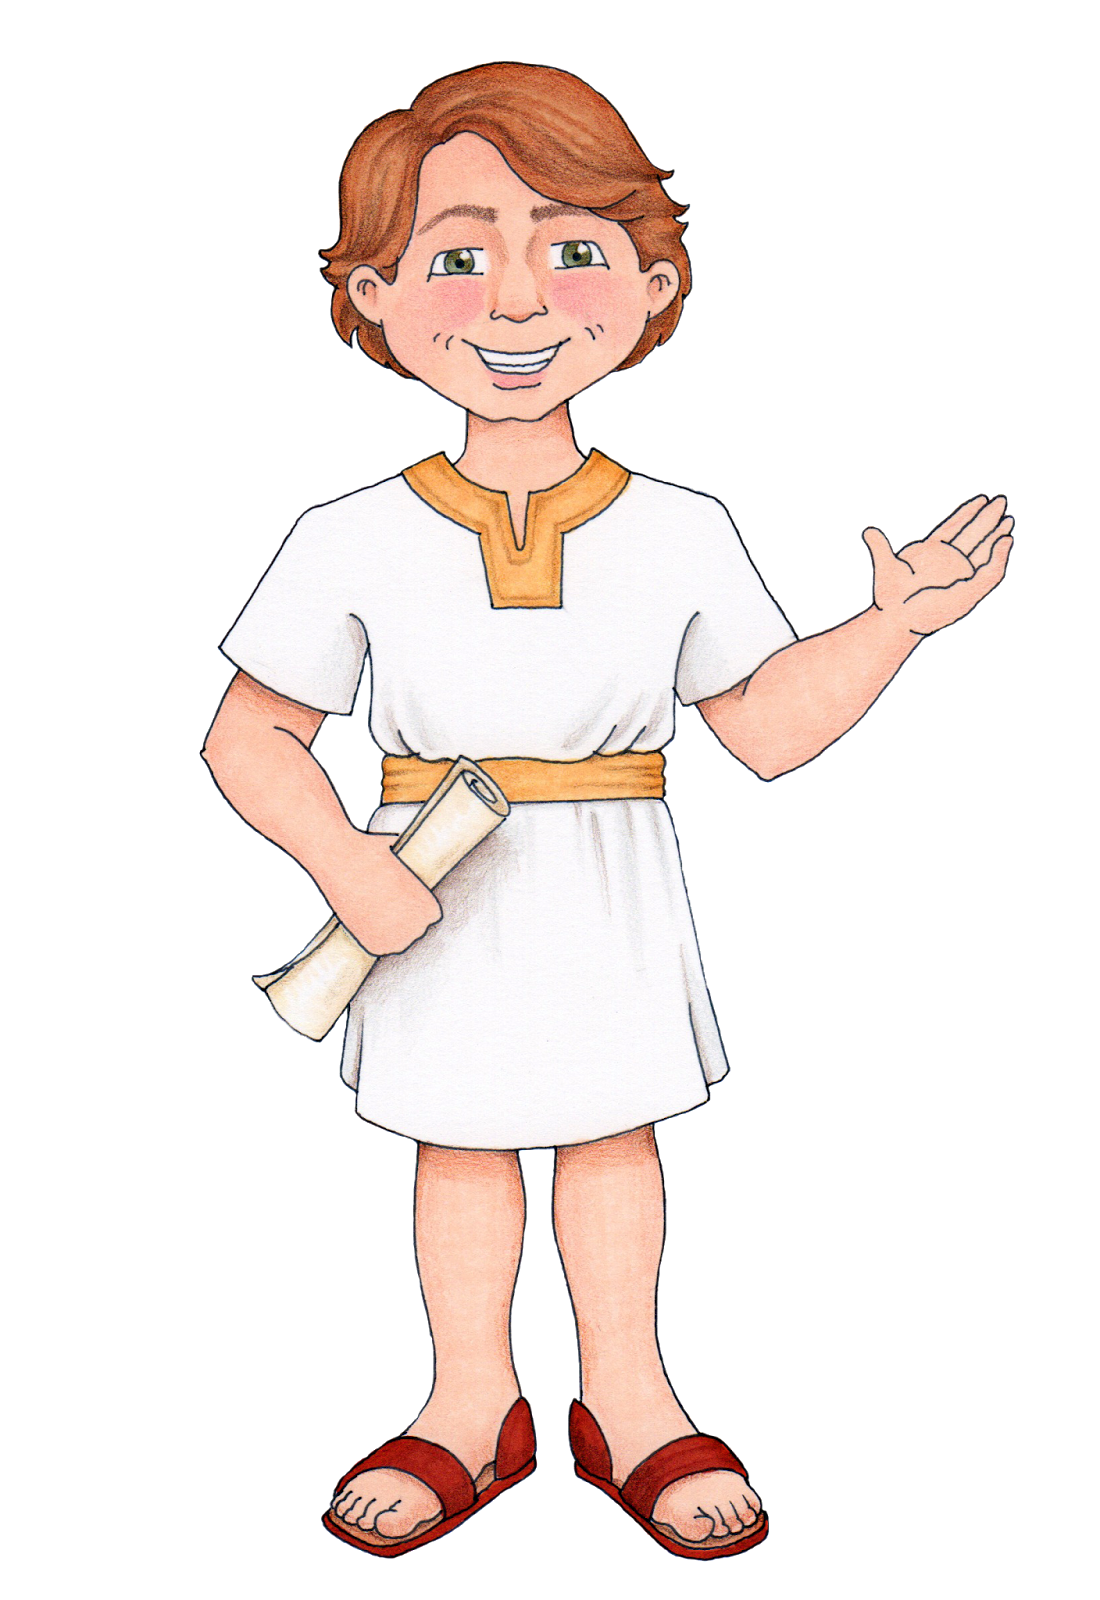 Susan fitch design follow. Lds clipart prophet